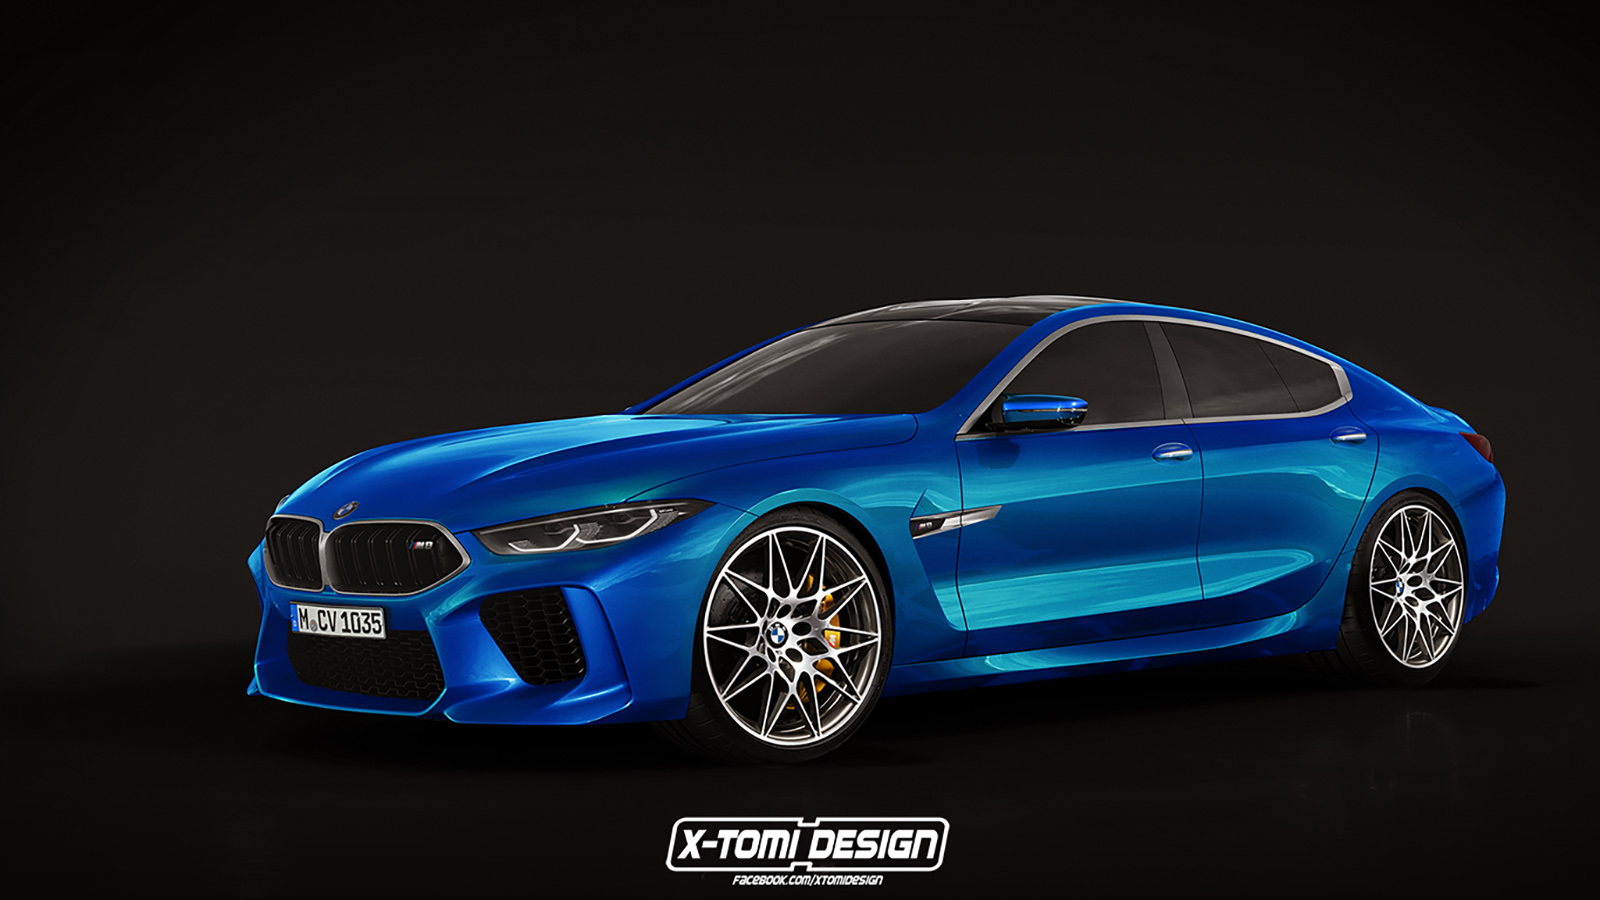 Xtomi S Rendering Of The Production Bmw M8 Gran Coupe Will